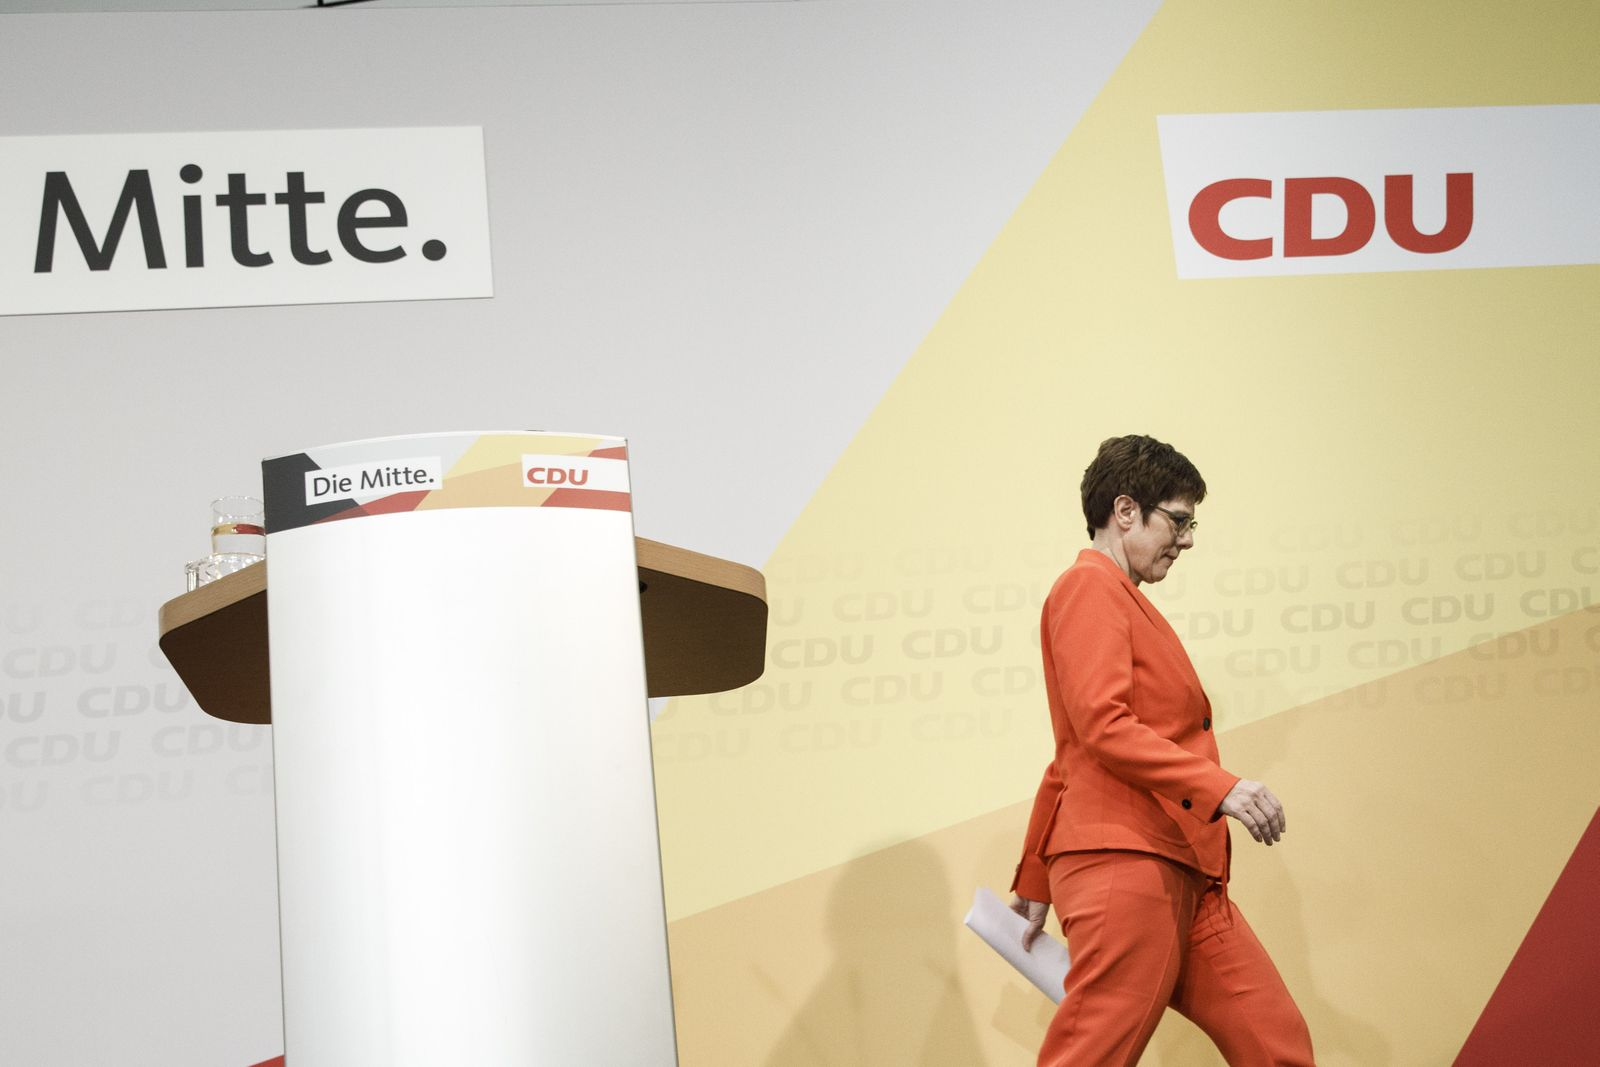 CDU And FDP Grapple With Thuringia Election Fallout